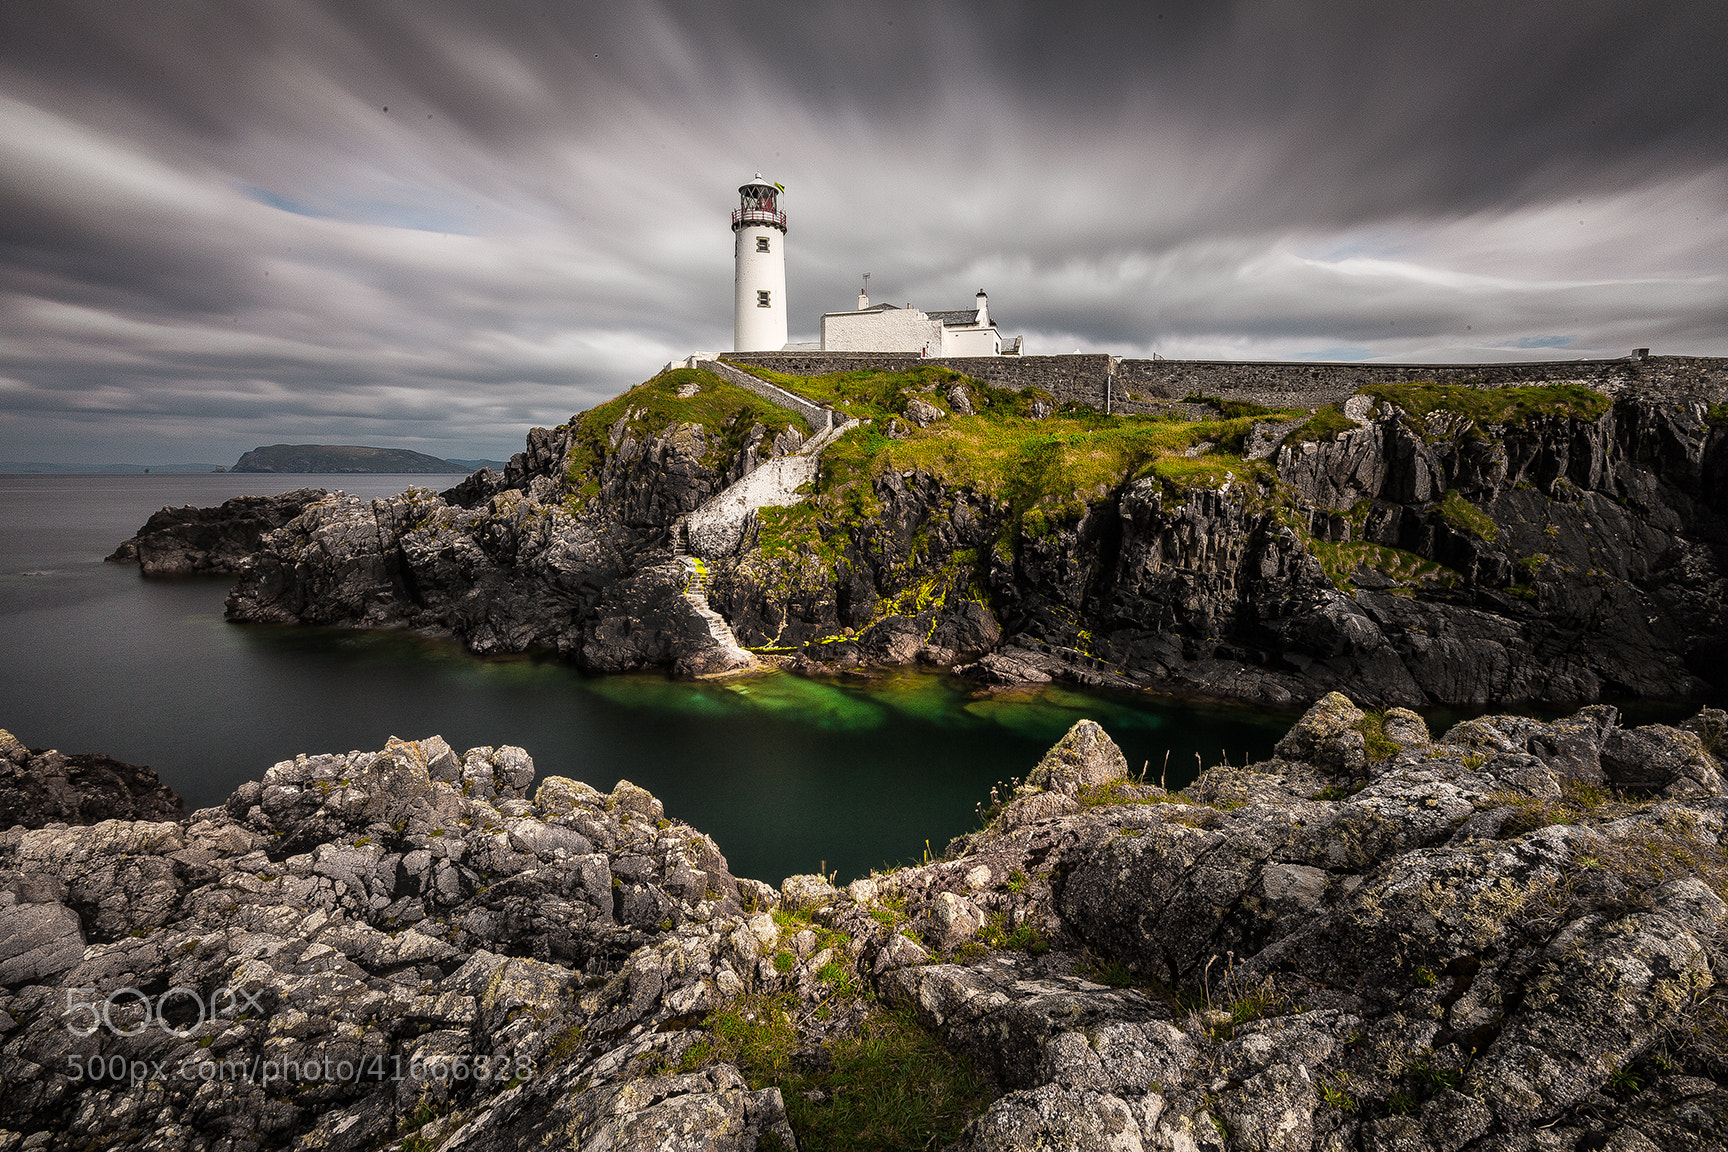 Photograph Fanad Lighthouse by Dominic Kummer on 500px